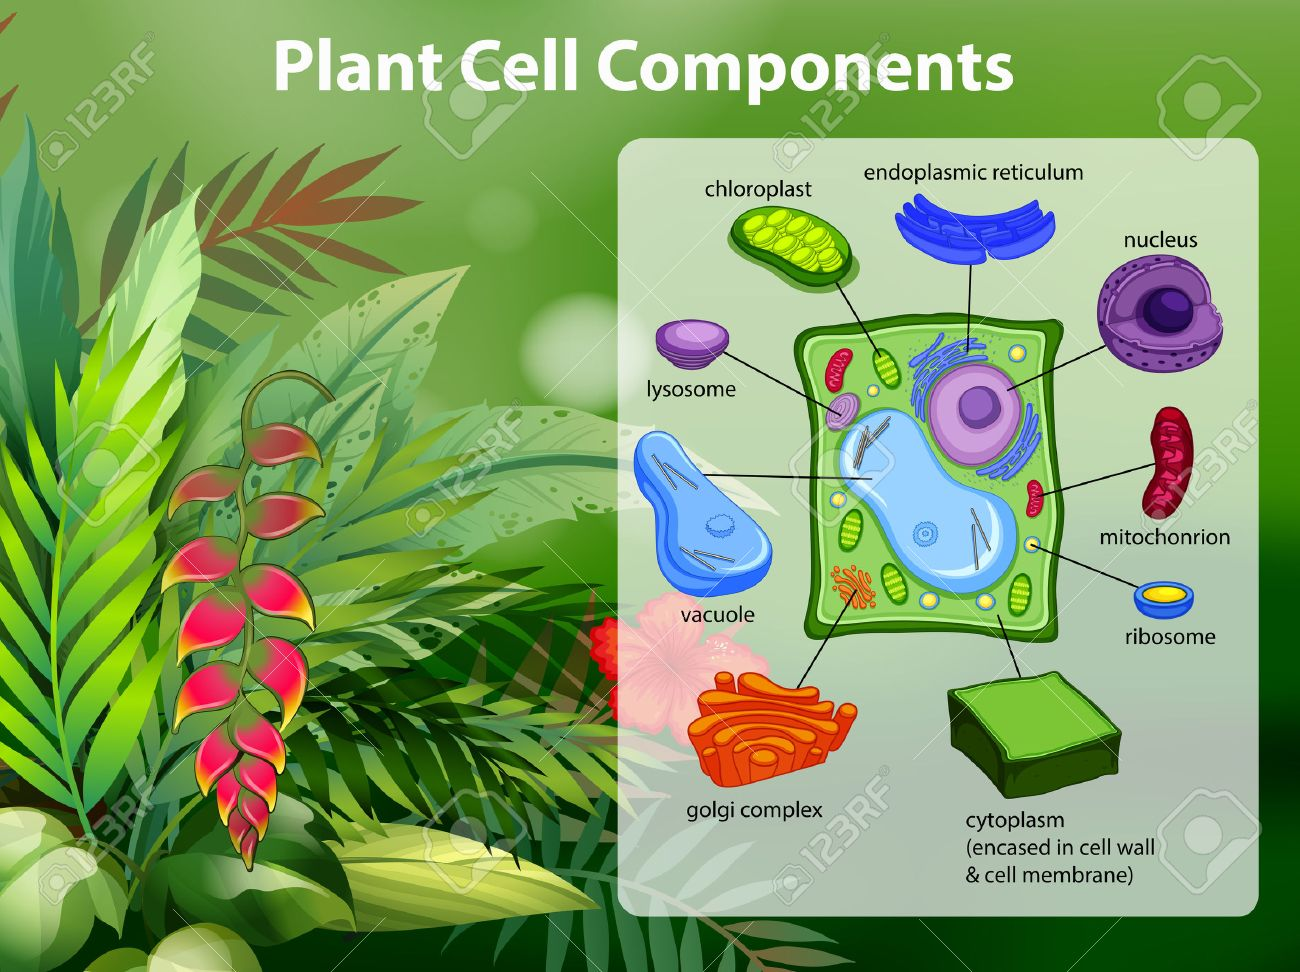 Plant cell components diagram illustration royalty free cliparts plant cell components diagram illustration stock vector 62917767 ccuart Images